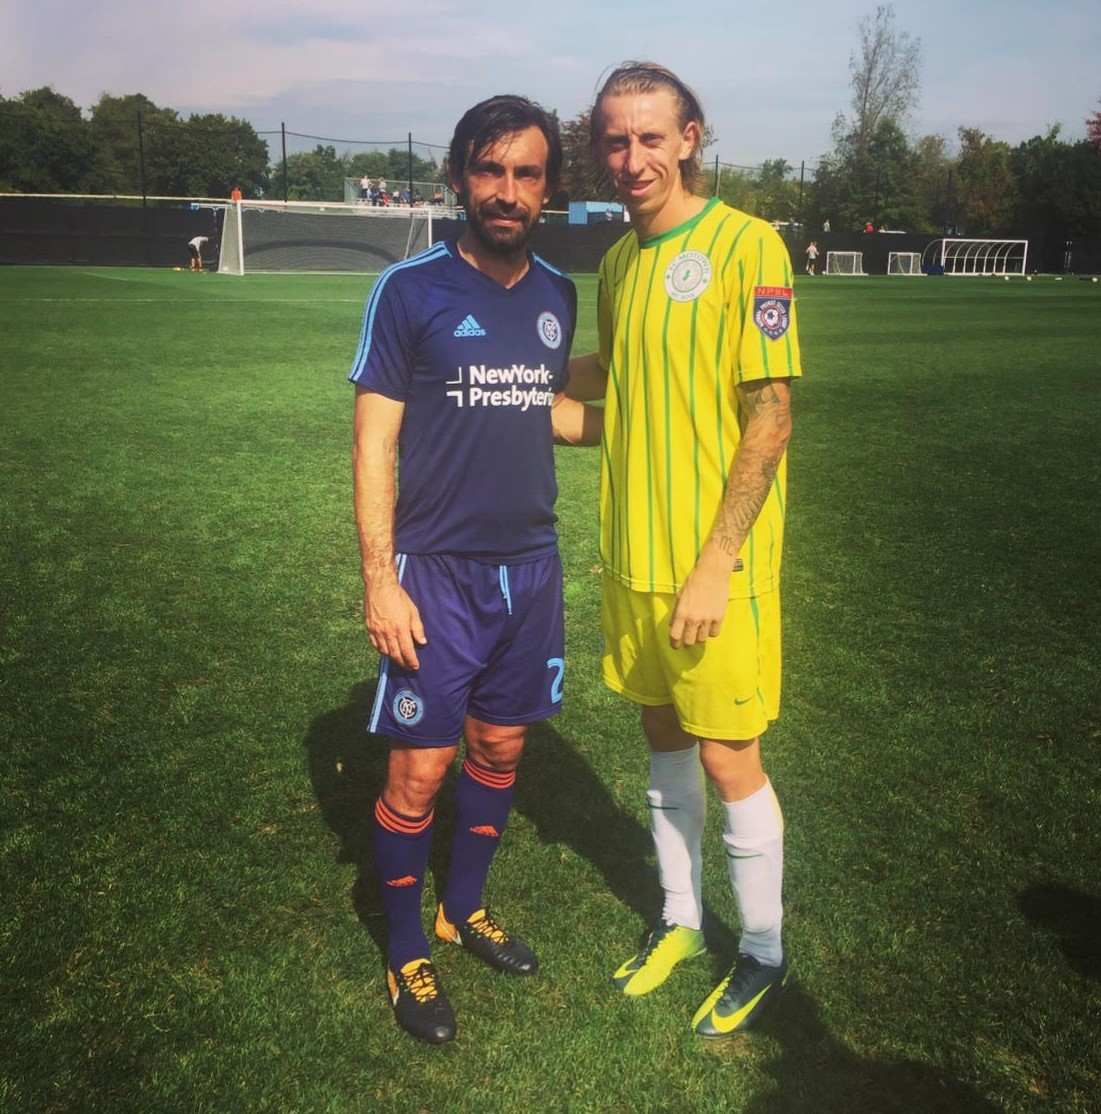 Katona poses with football legend Andrea Pirlo following a casual friendly between FC Motown and New York City FC (Credit: Chris Katona)